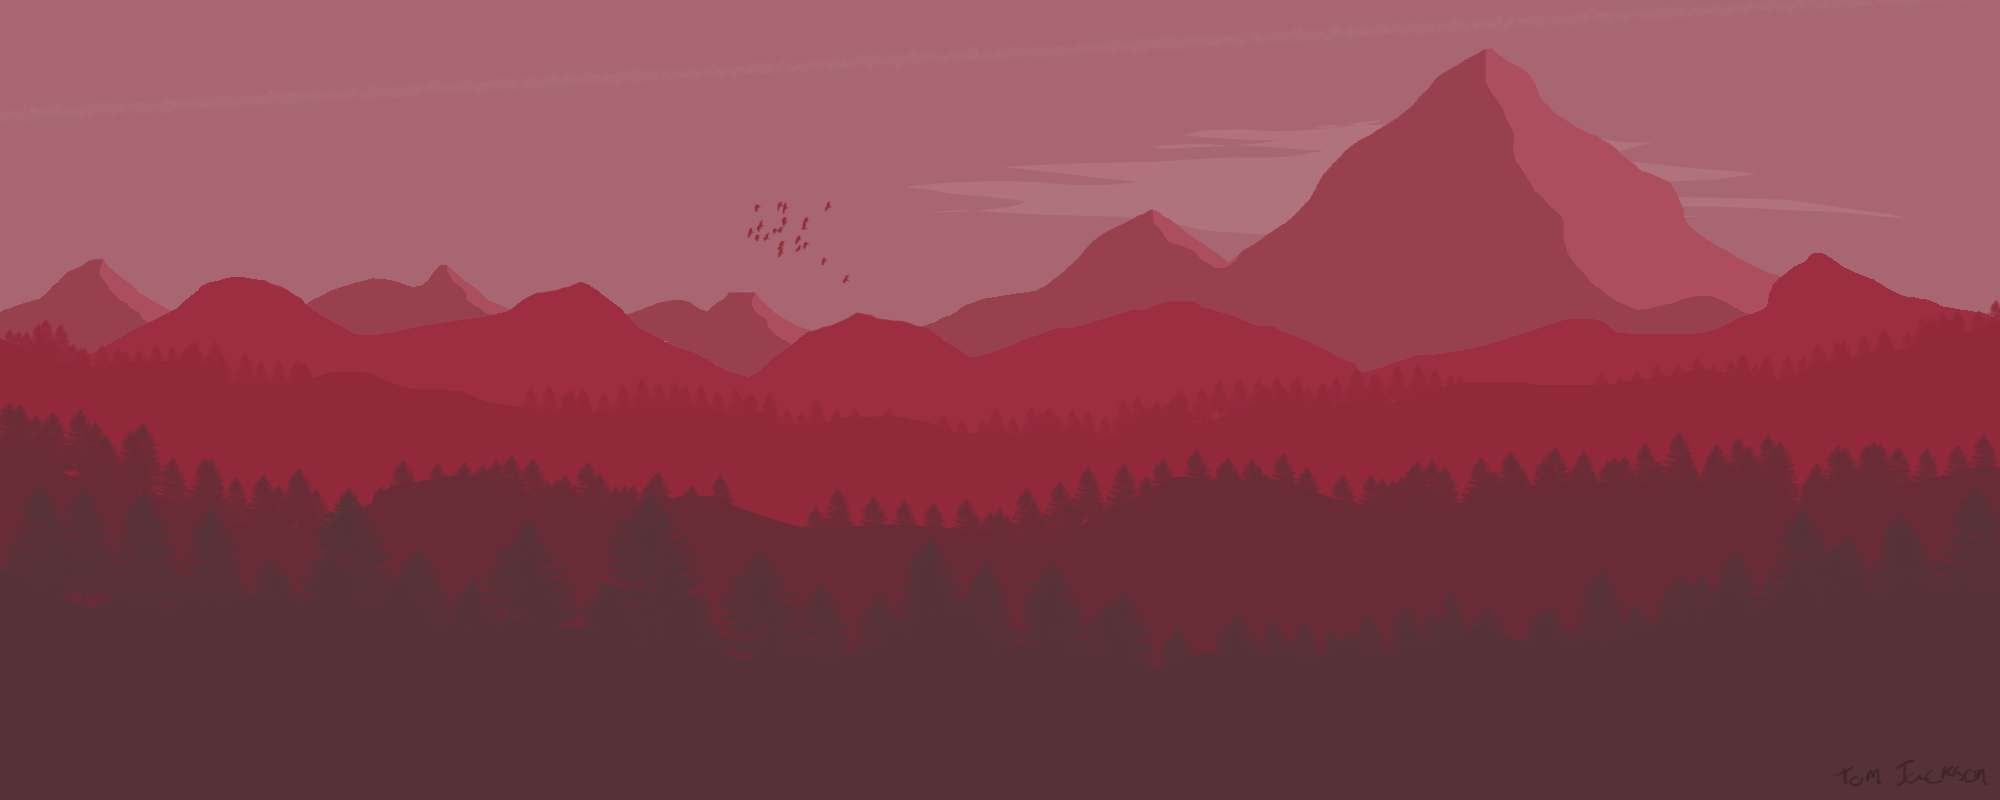 Minimalist art style landscape by dr sandvich on deviantart for Art minimaliste artiste